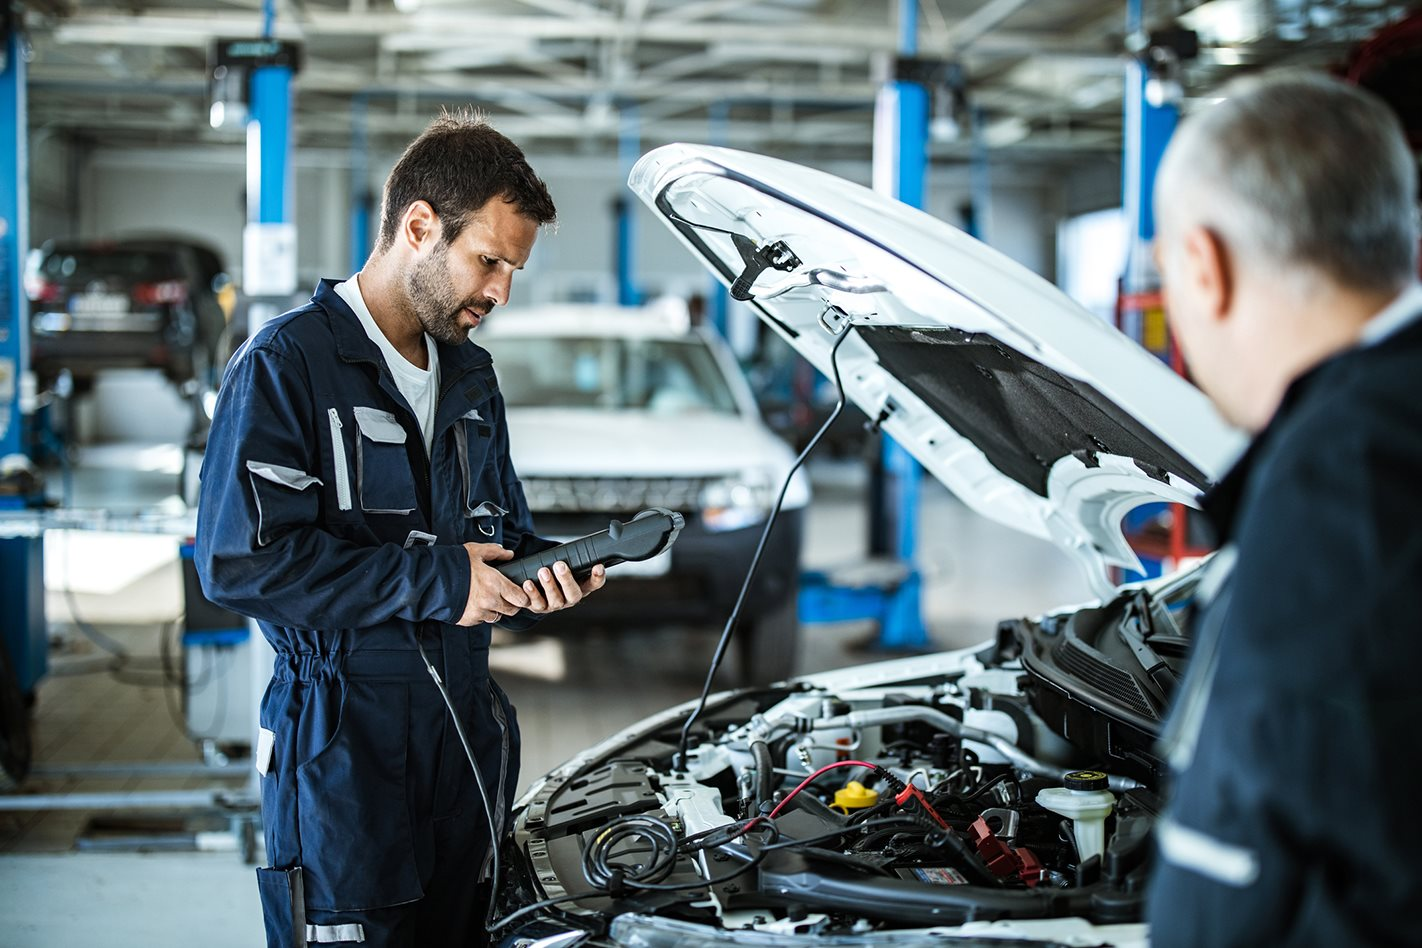 How often should I service my car?